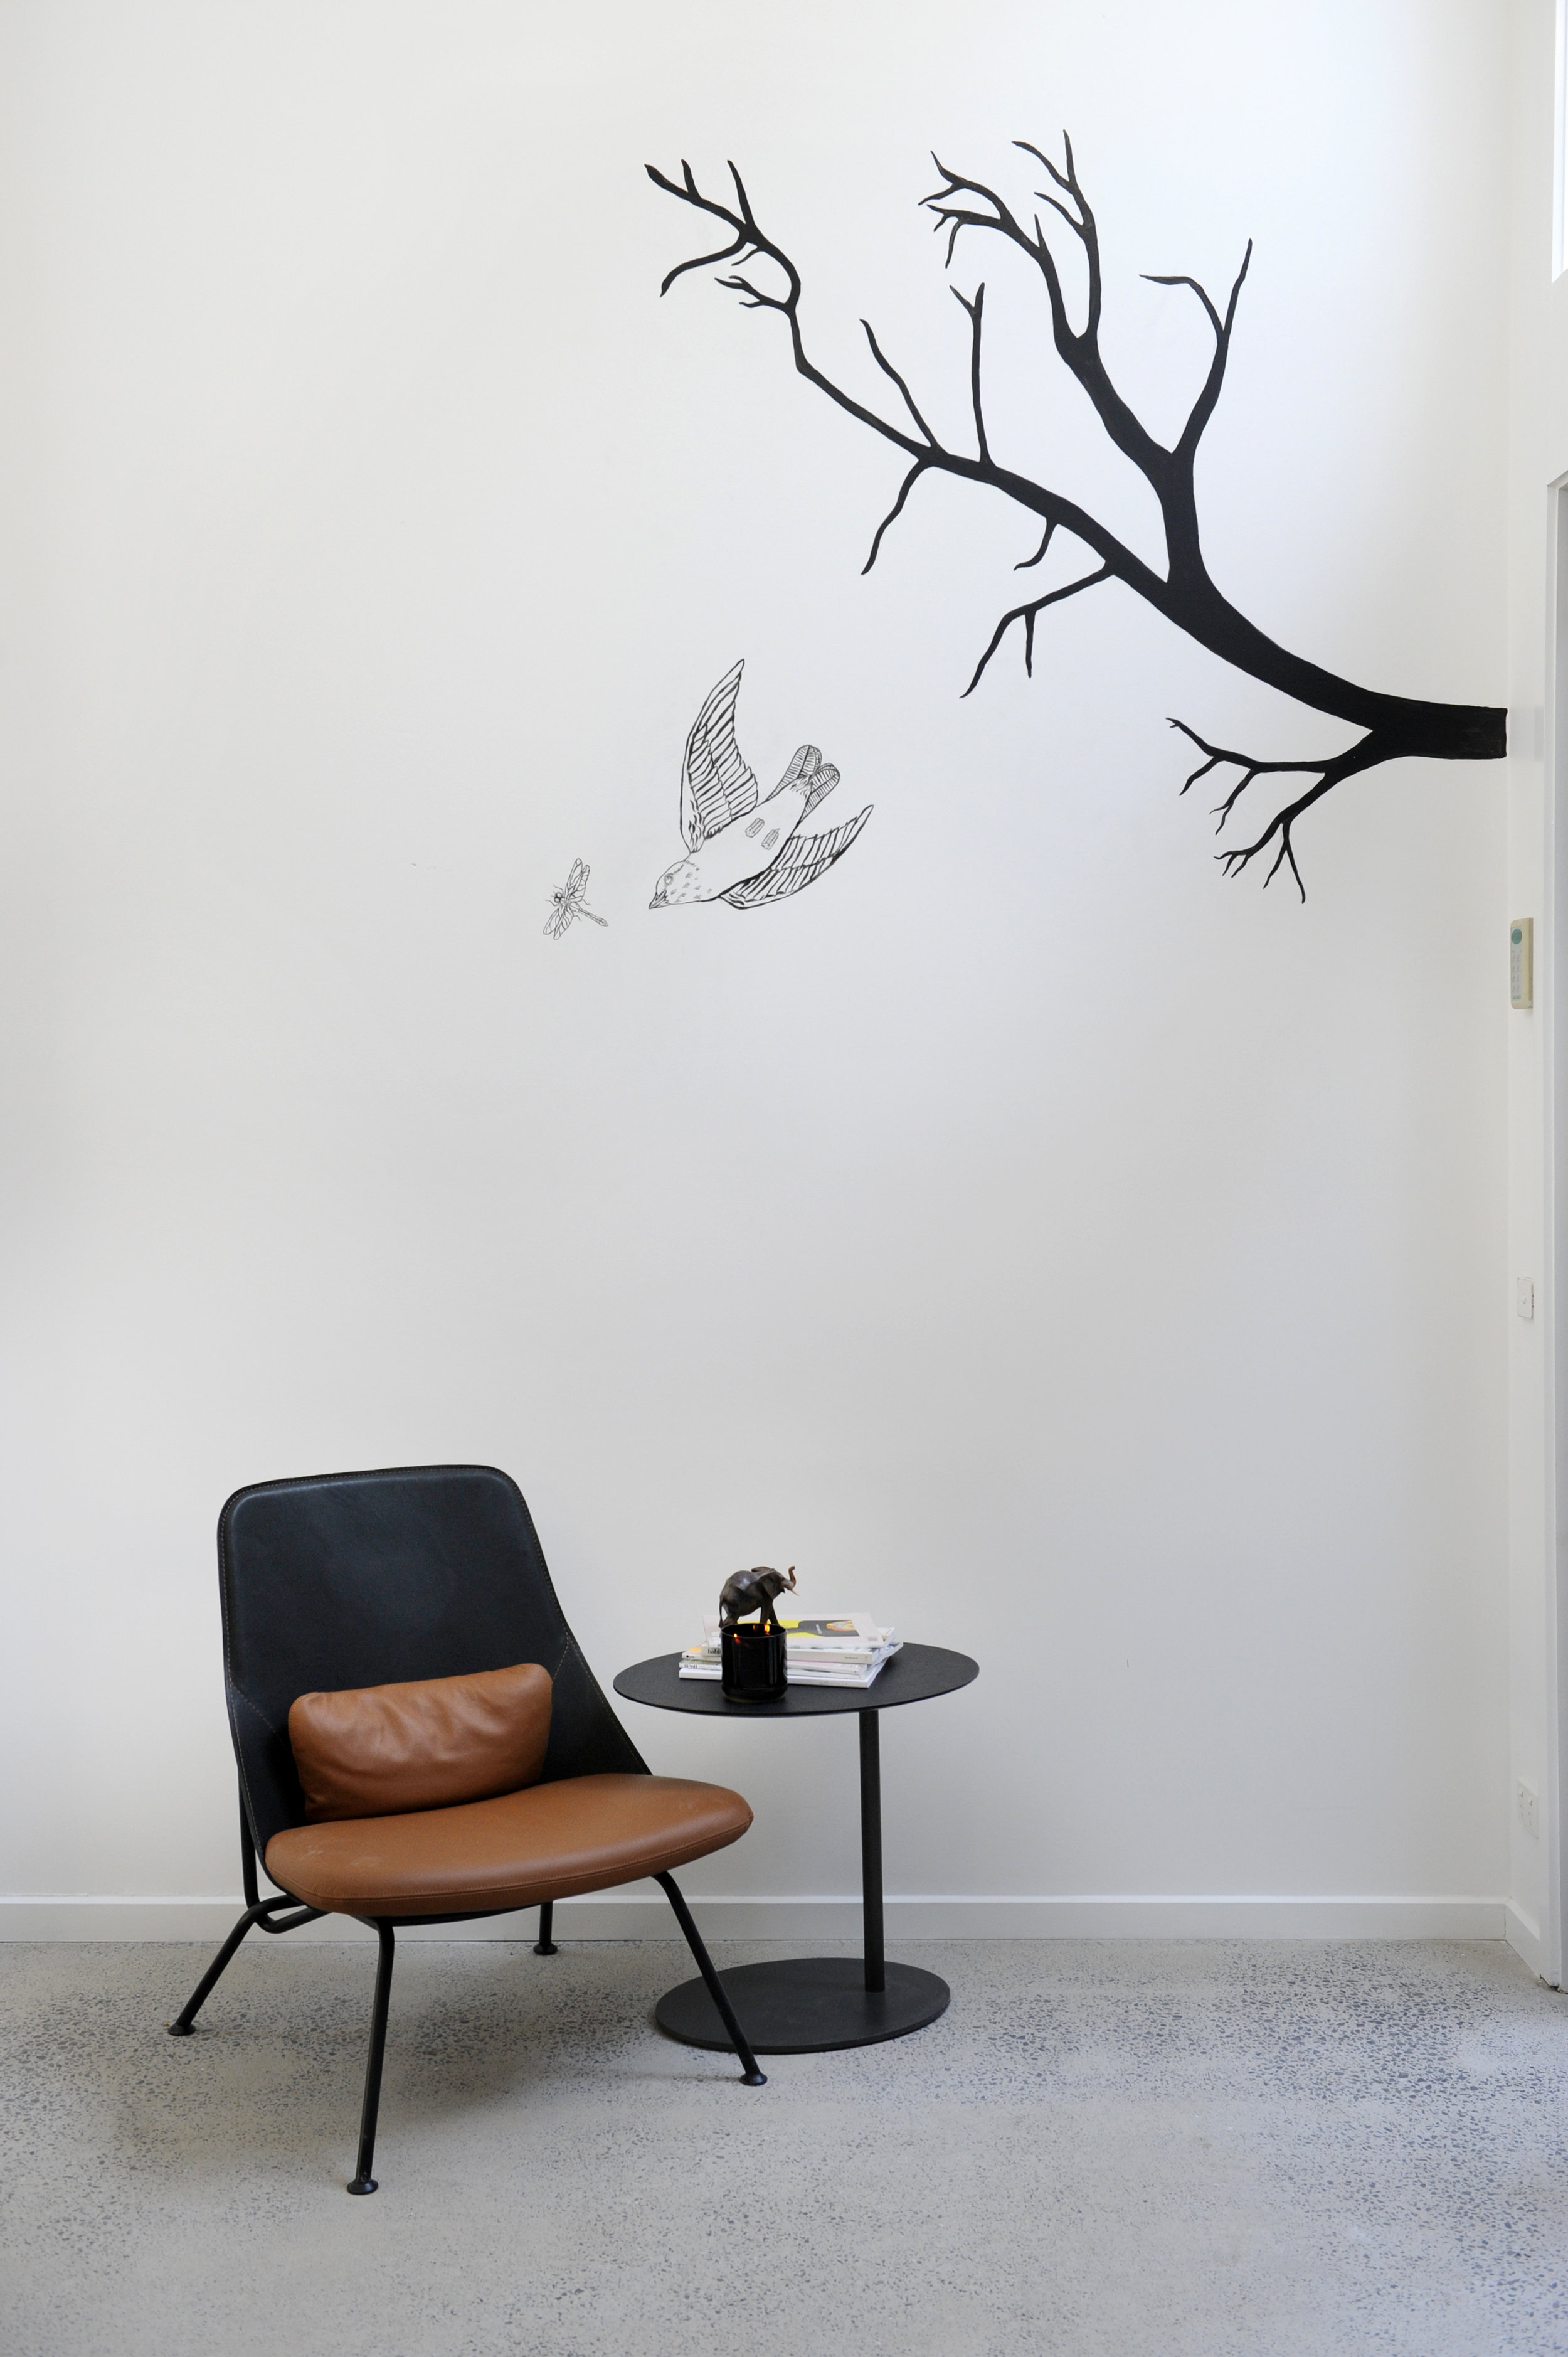 INDOOR | Illustrative artwork by Tessa McDonnell showing it's extent into the indoor areas